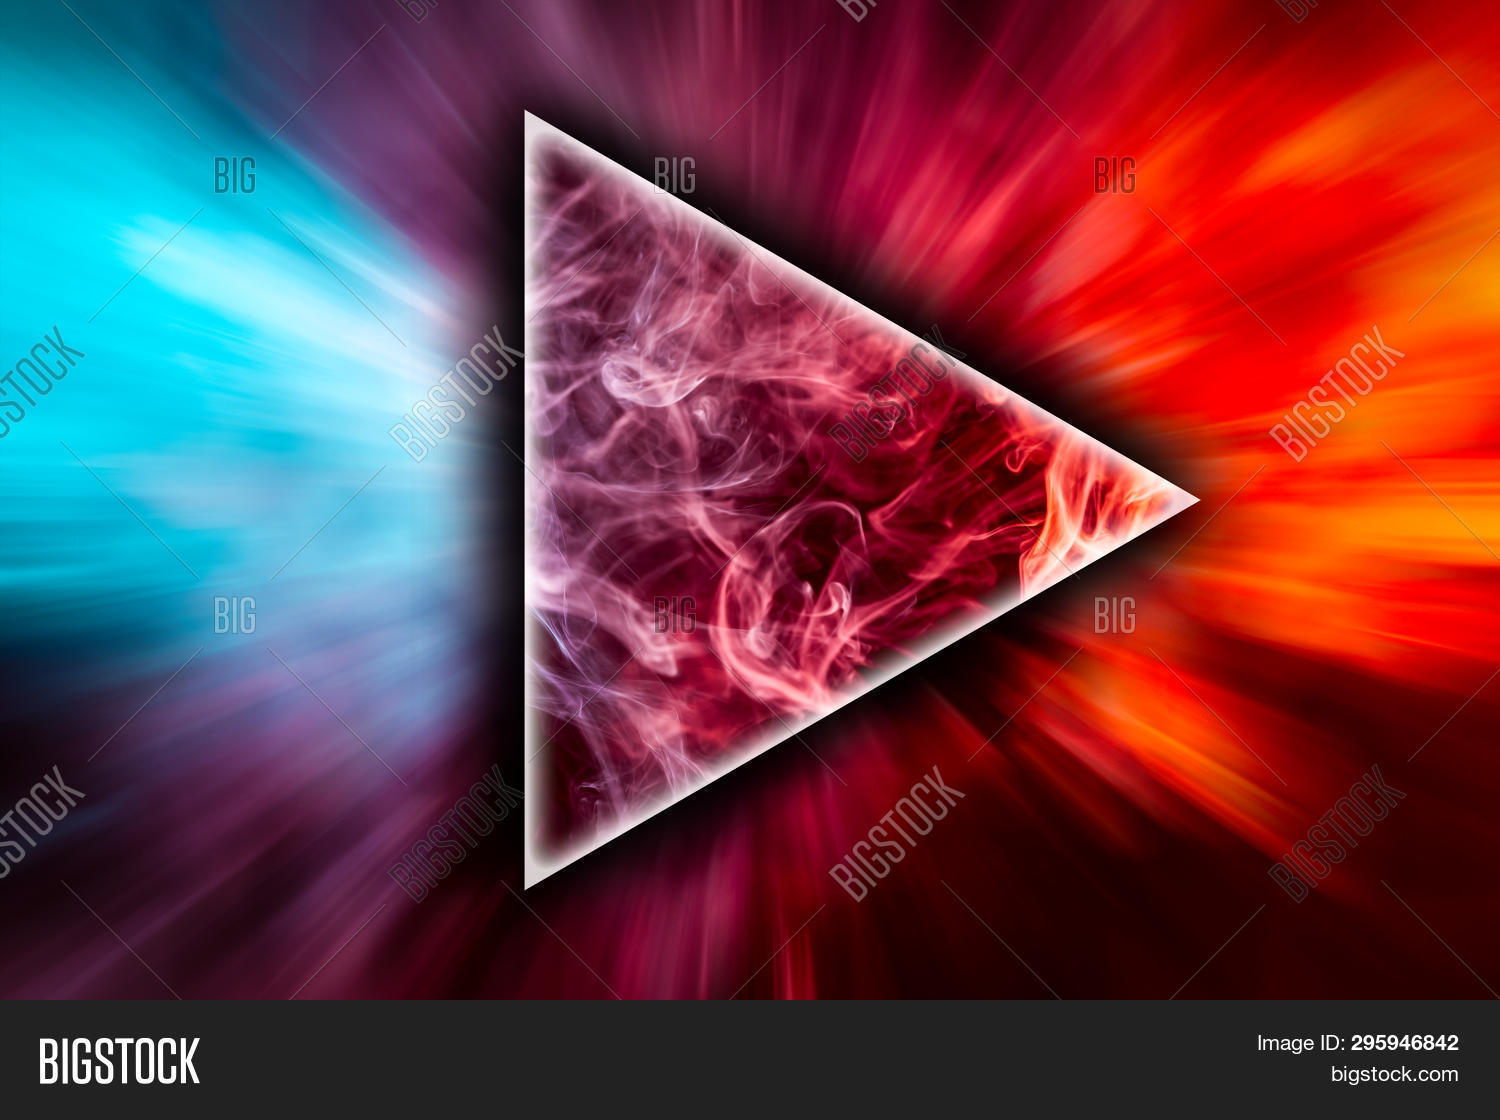 Frozen Abstract Image Photo Free Trial Bigstock